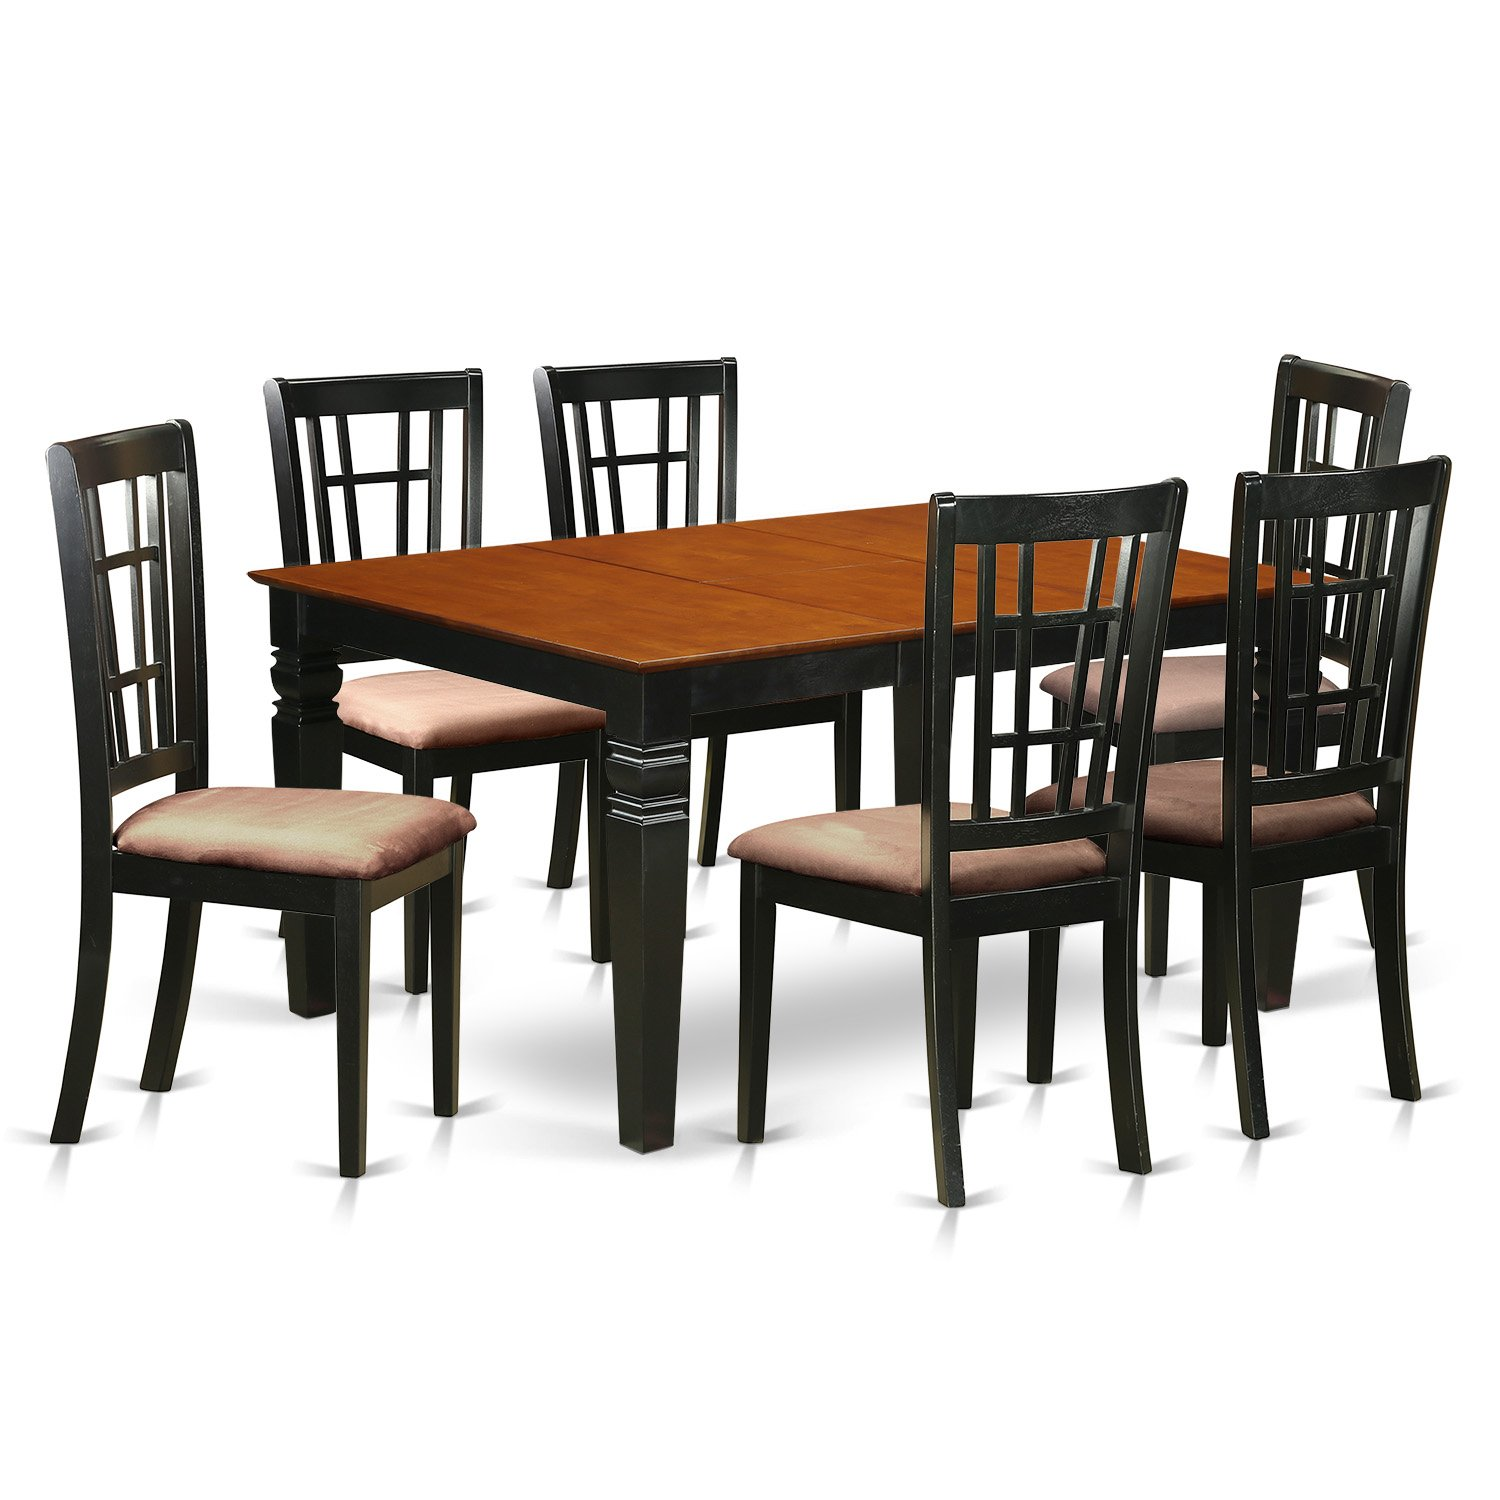 7 Pc Dining set with a Dining Table and 6 Kitchen Chairs in Black